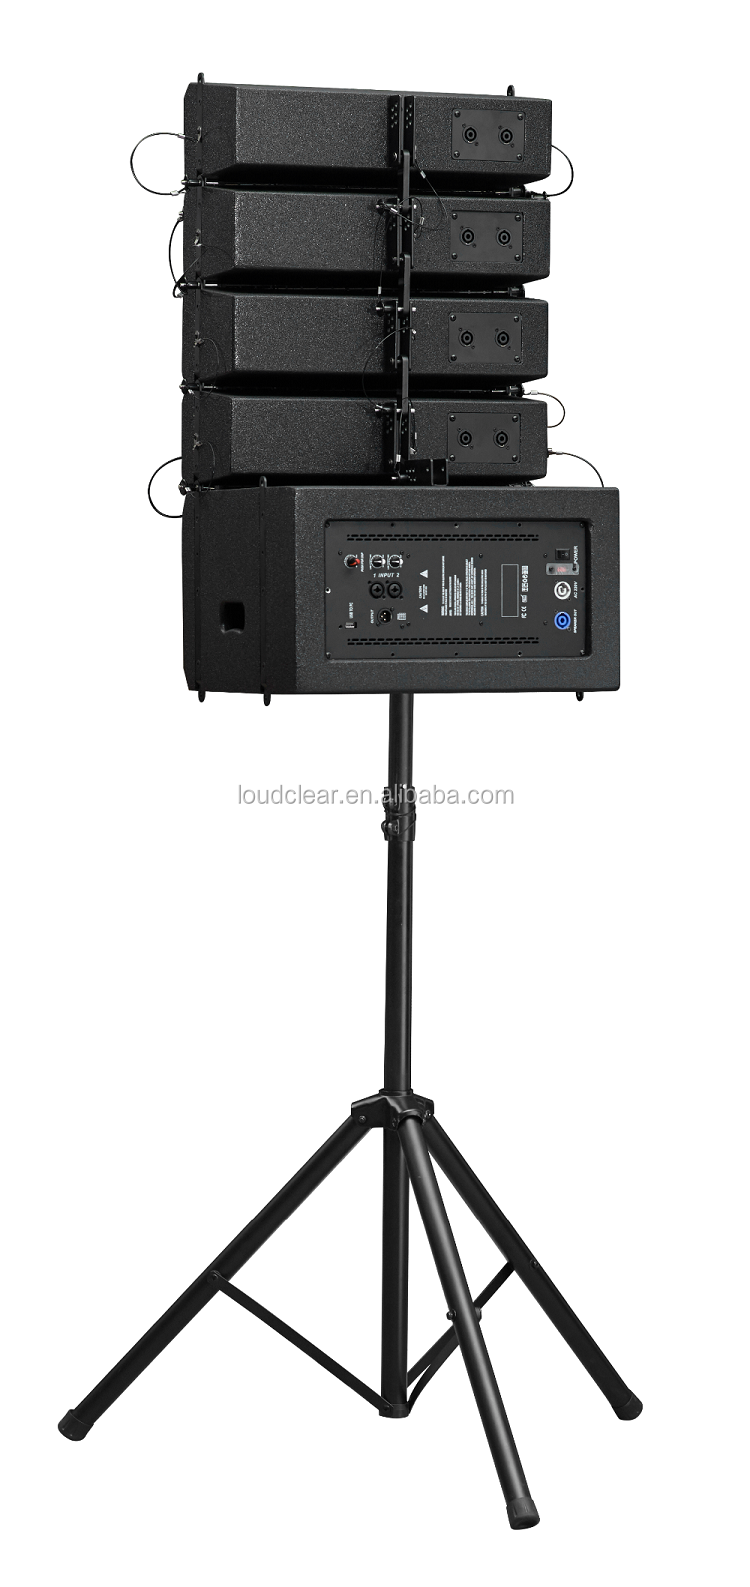 China speaker supplier wide adaptability line array two-way speaker with high quality